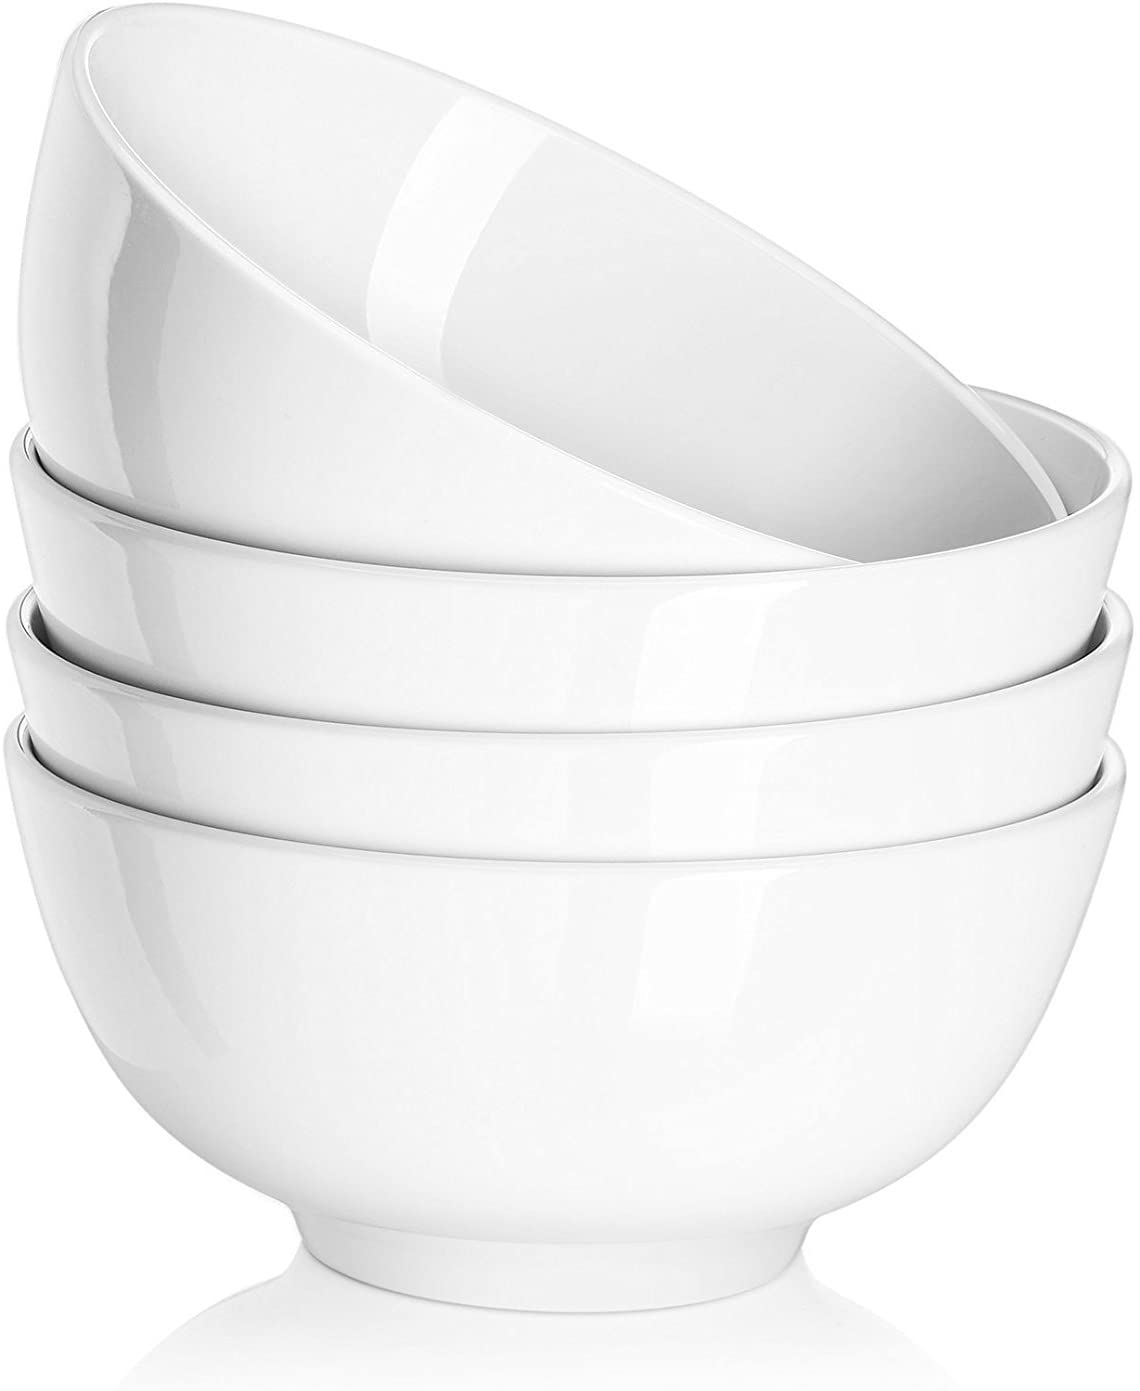 DOWAN 10 Ounce Porcelain Soup and Cereal Bowls, 4 Packs, White